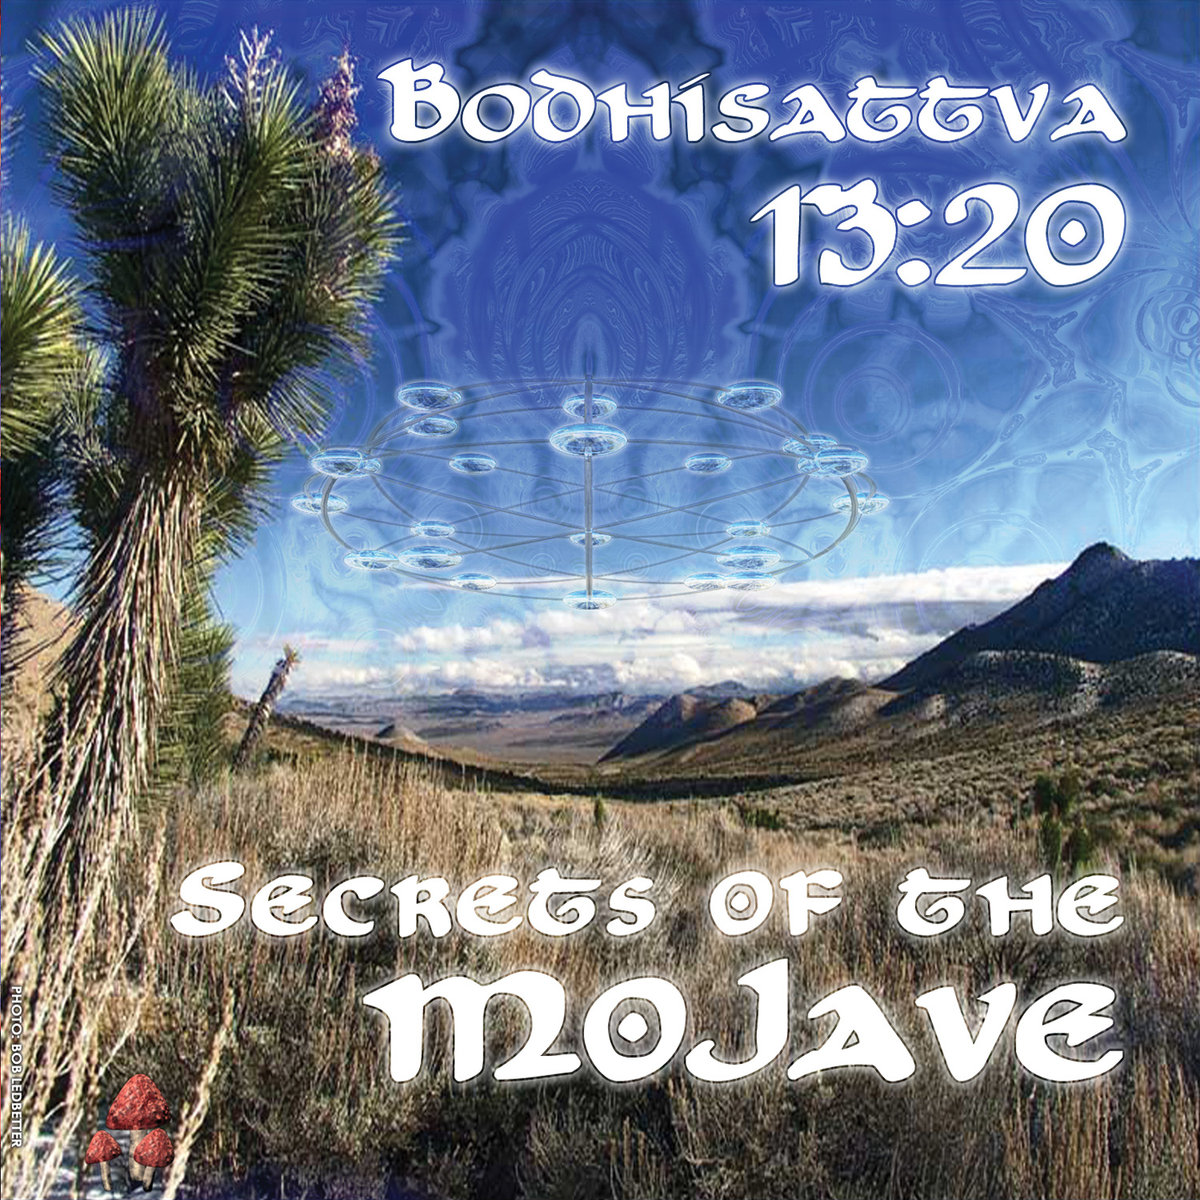 Bodhisattva 13:20 - Ixtlan Winds @ 'Secrets of the Mojave' album (electronic, goa)